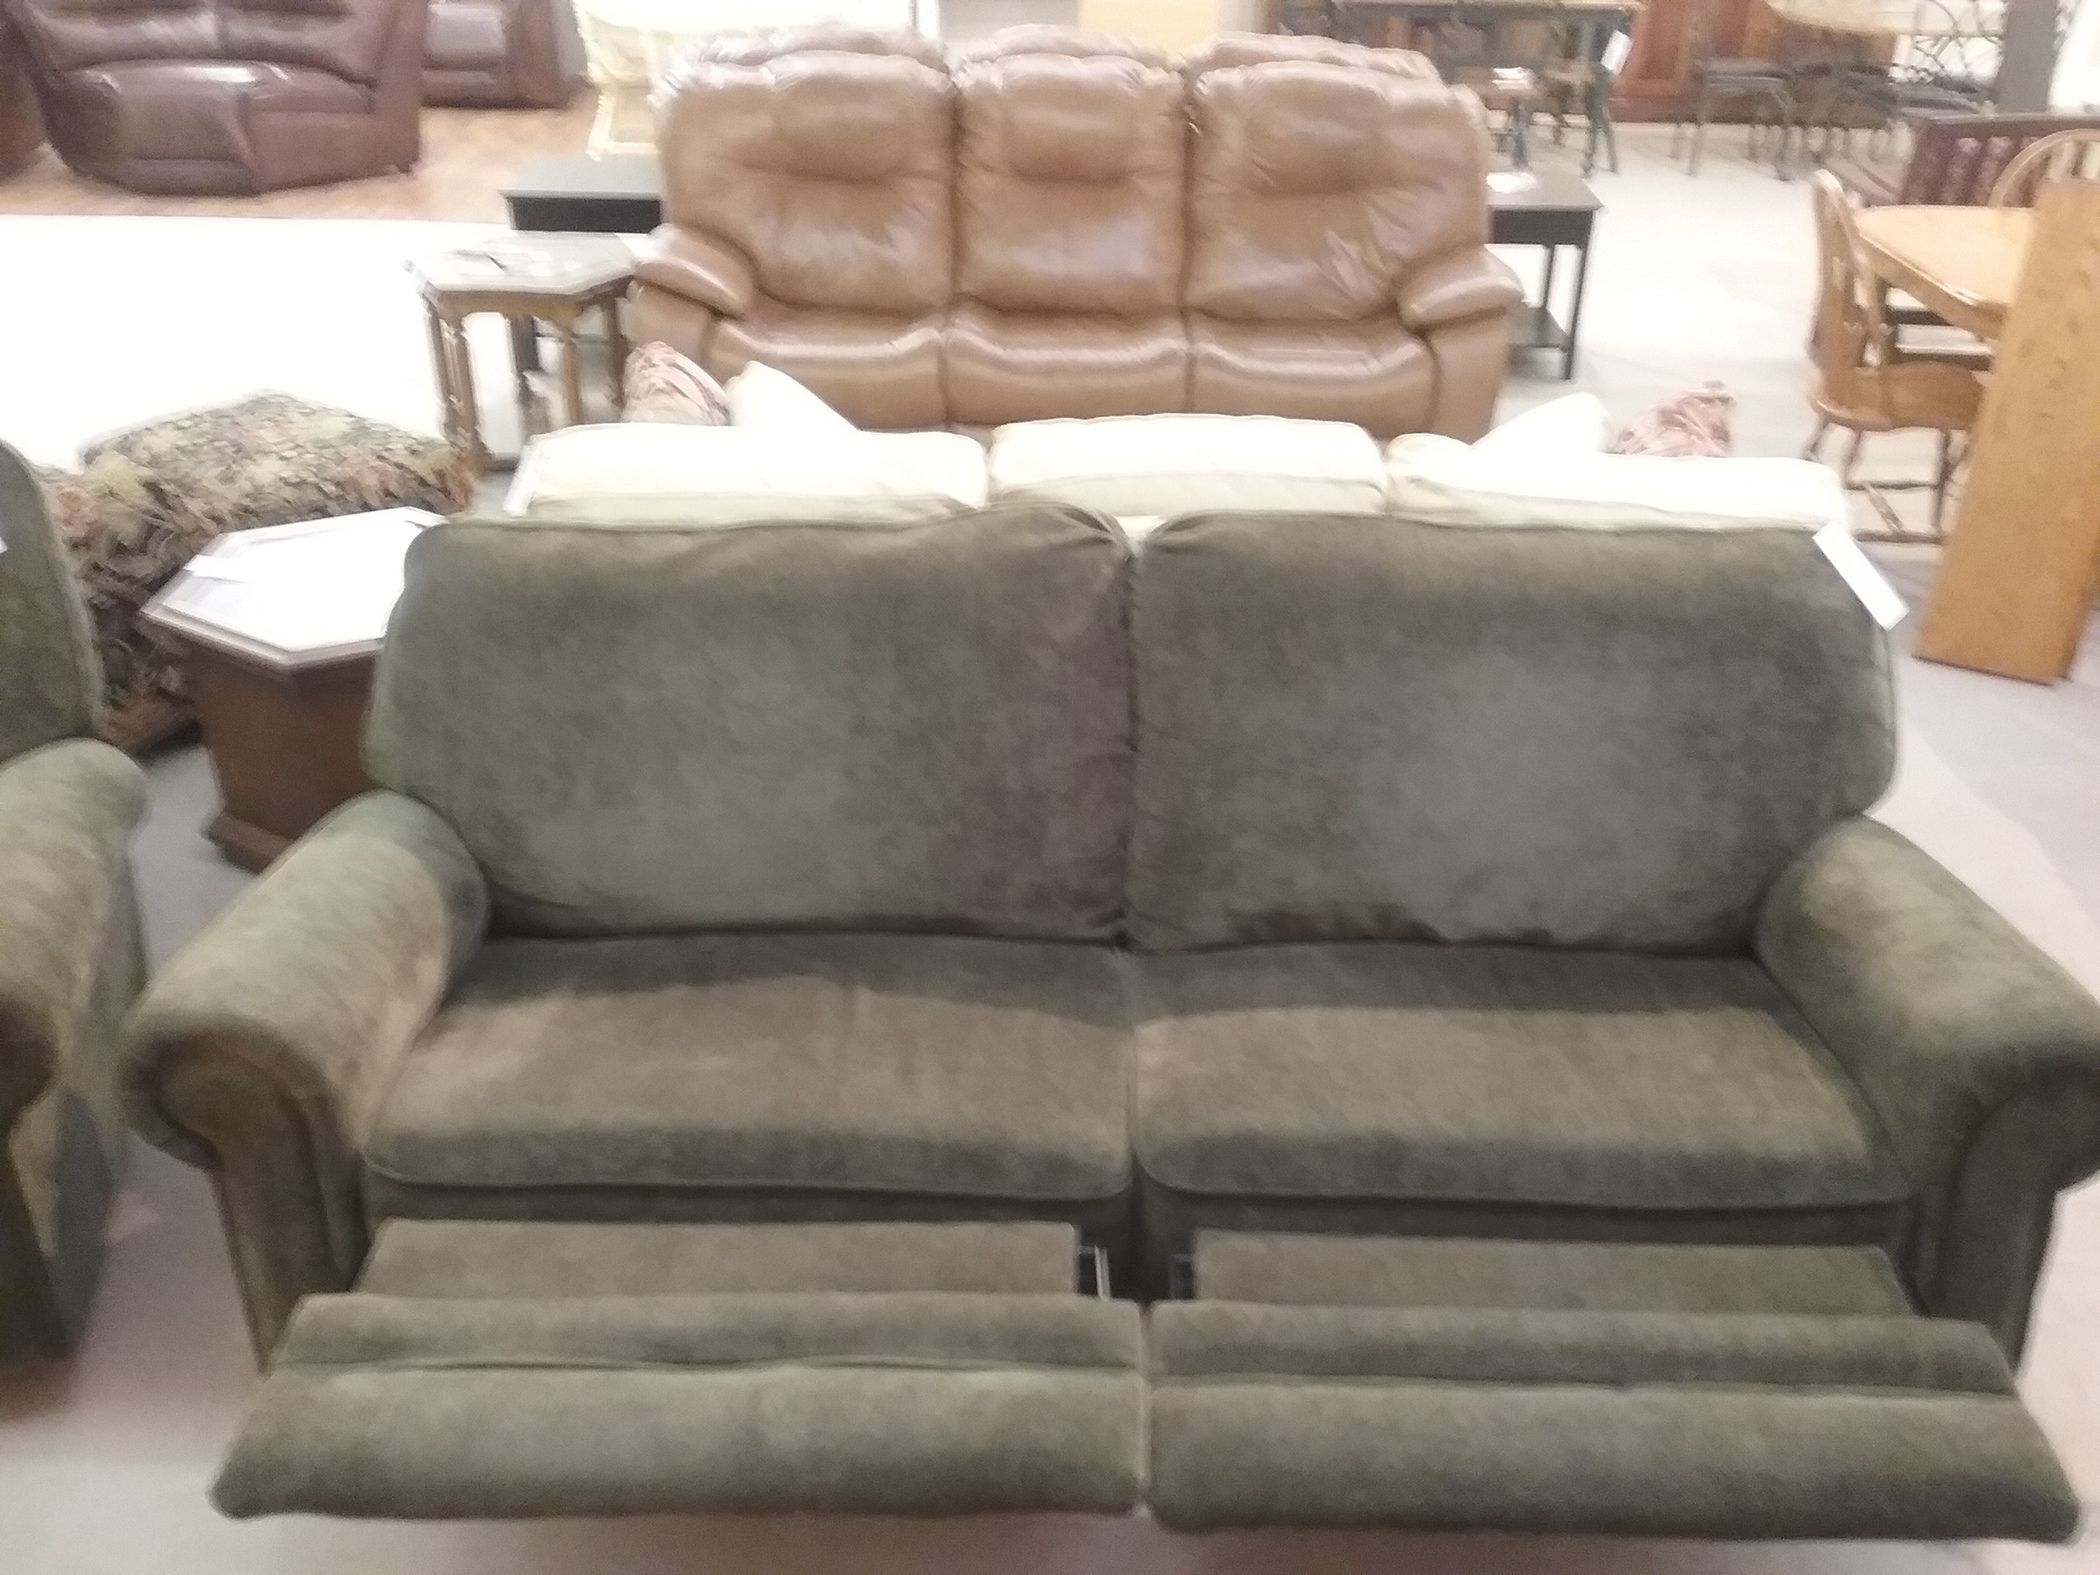 Green Berkline Reclining Sofa Delmarva Furniture Consignment